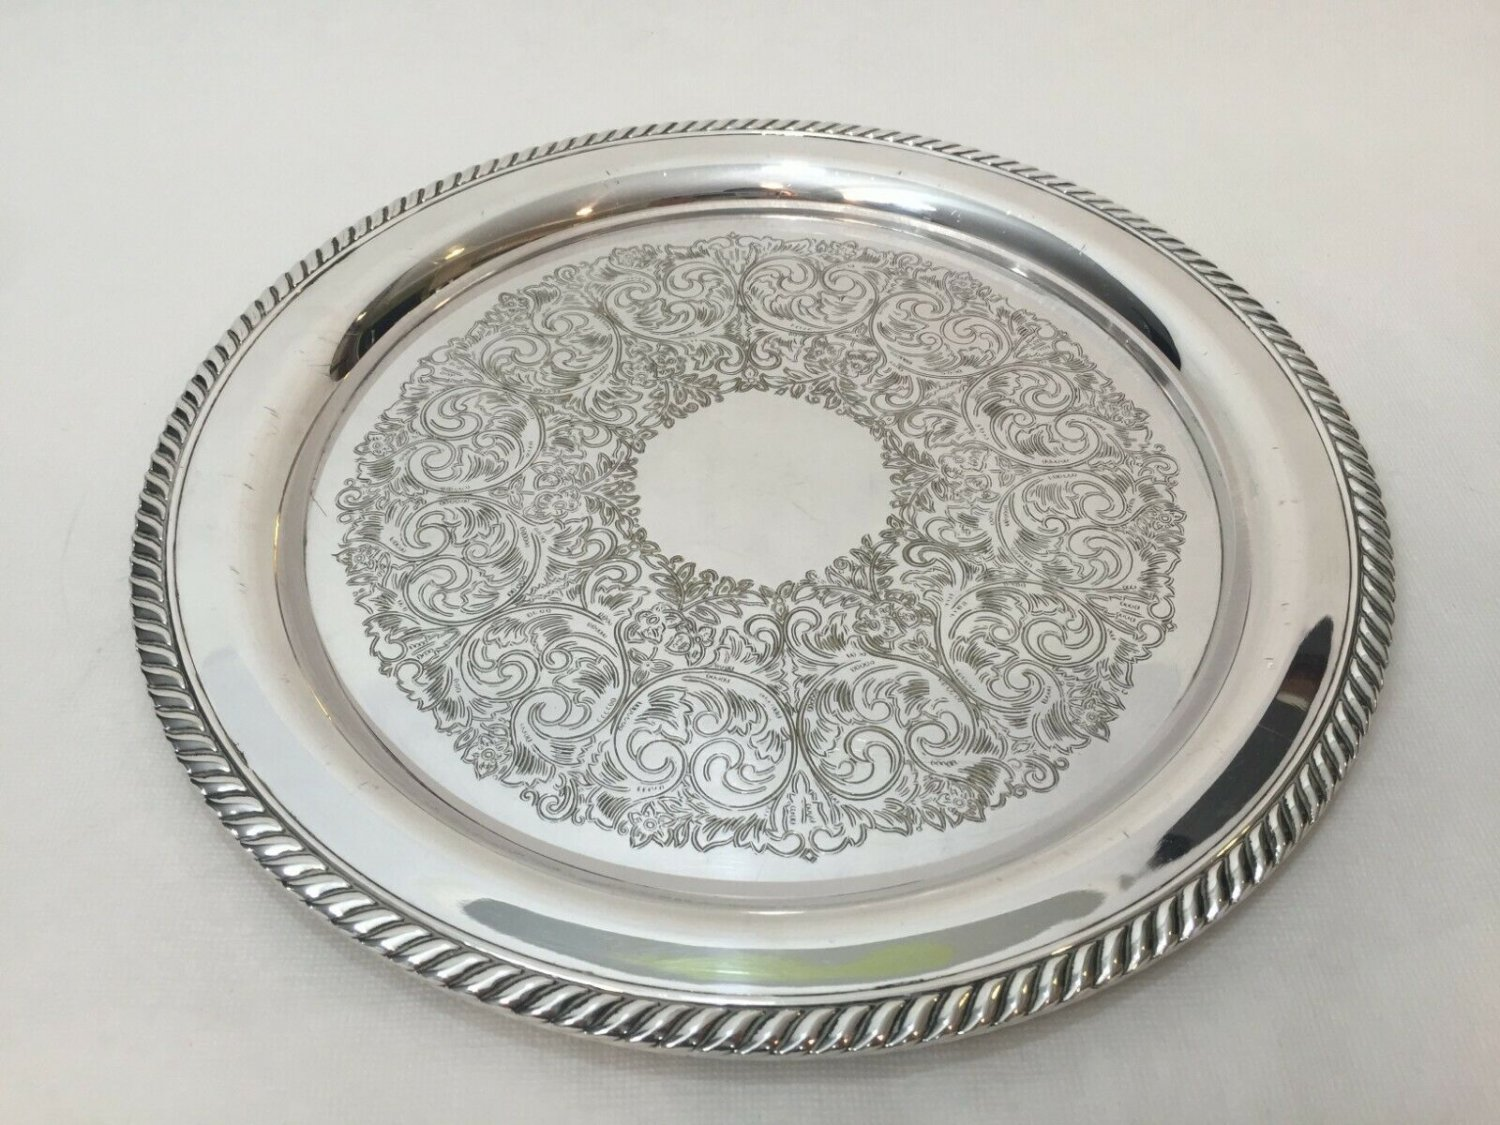 "Vintage WM. A. Rogers Round Silverplate Tray, 12 1/4"" Diameter x 3/4"" High"